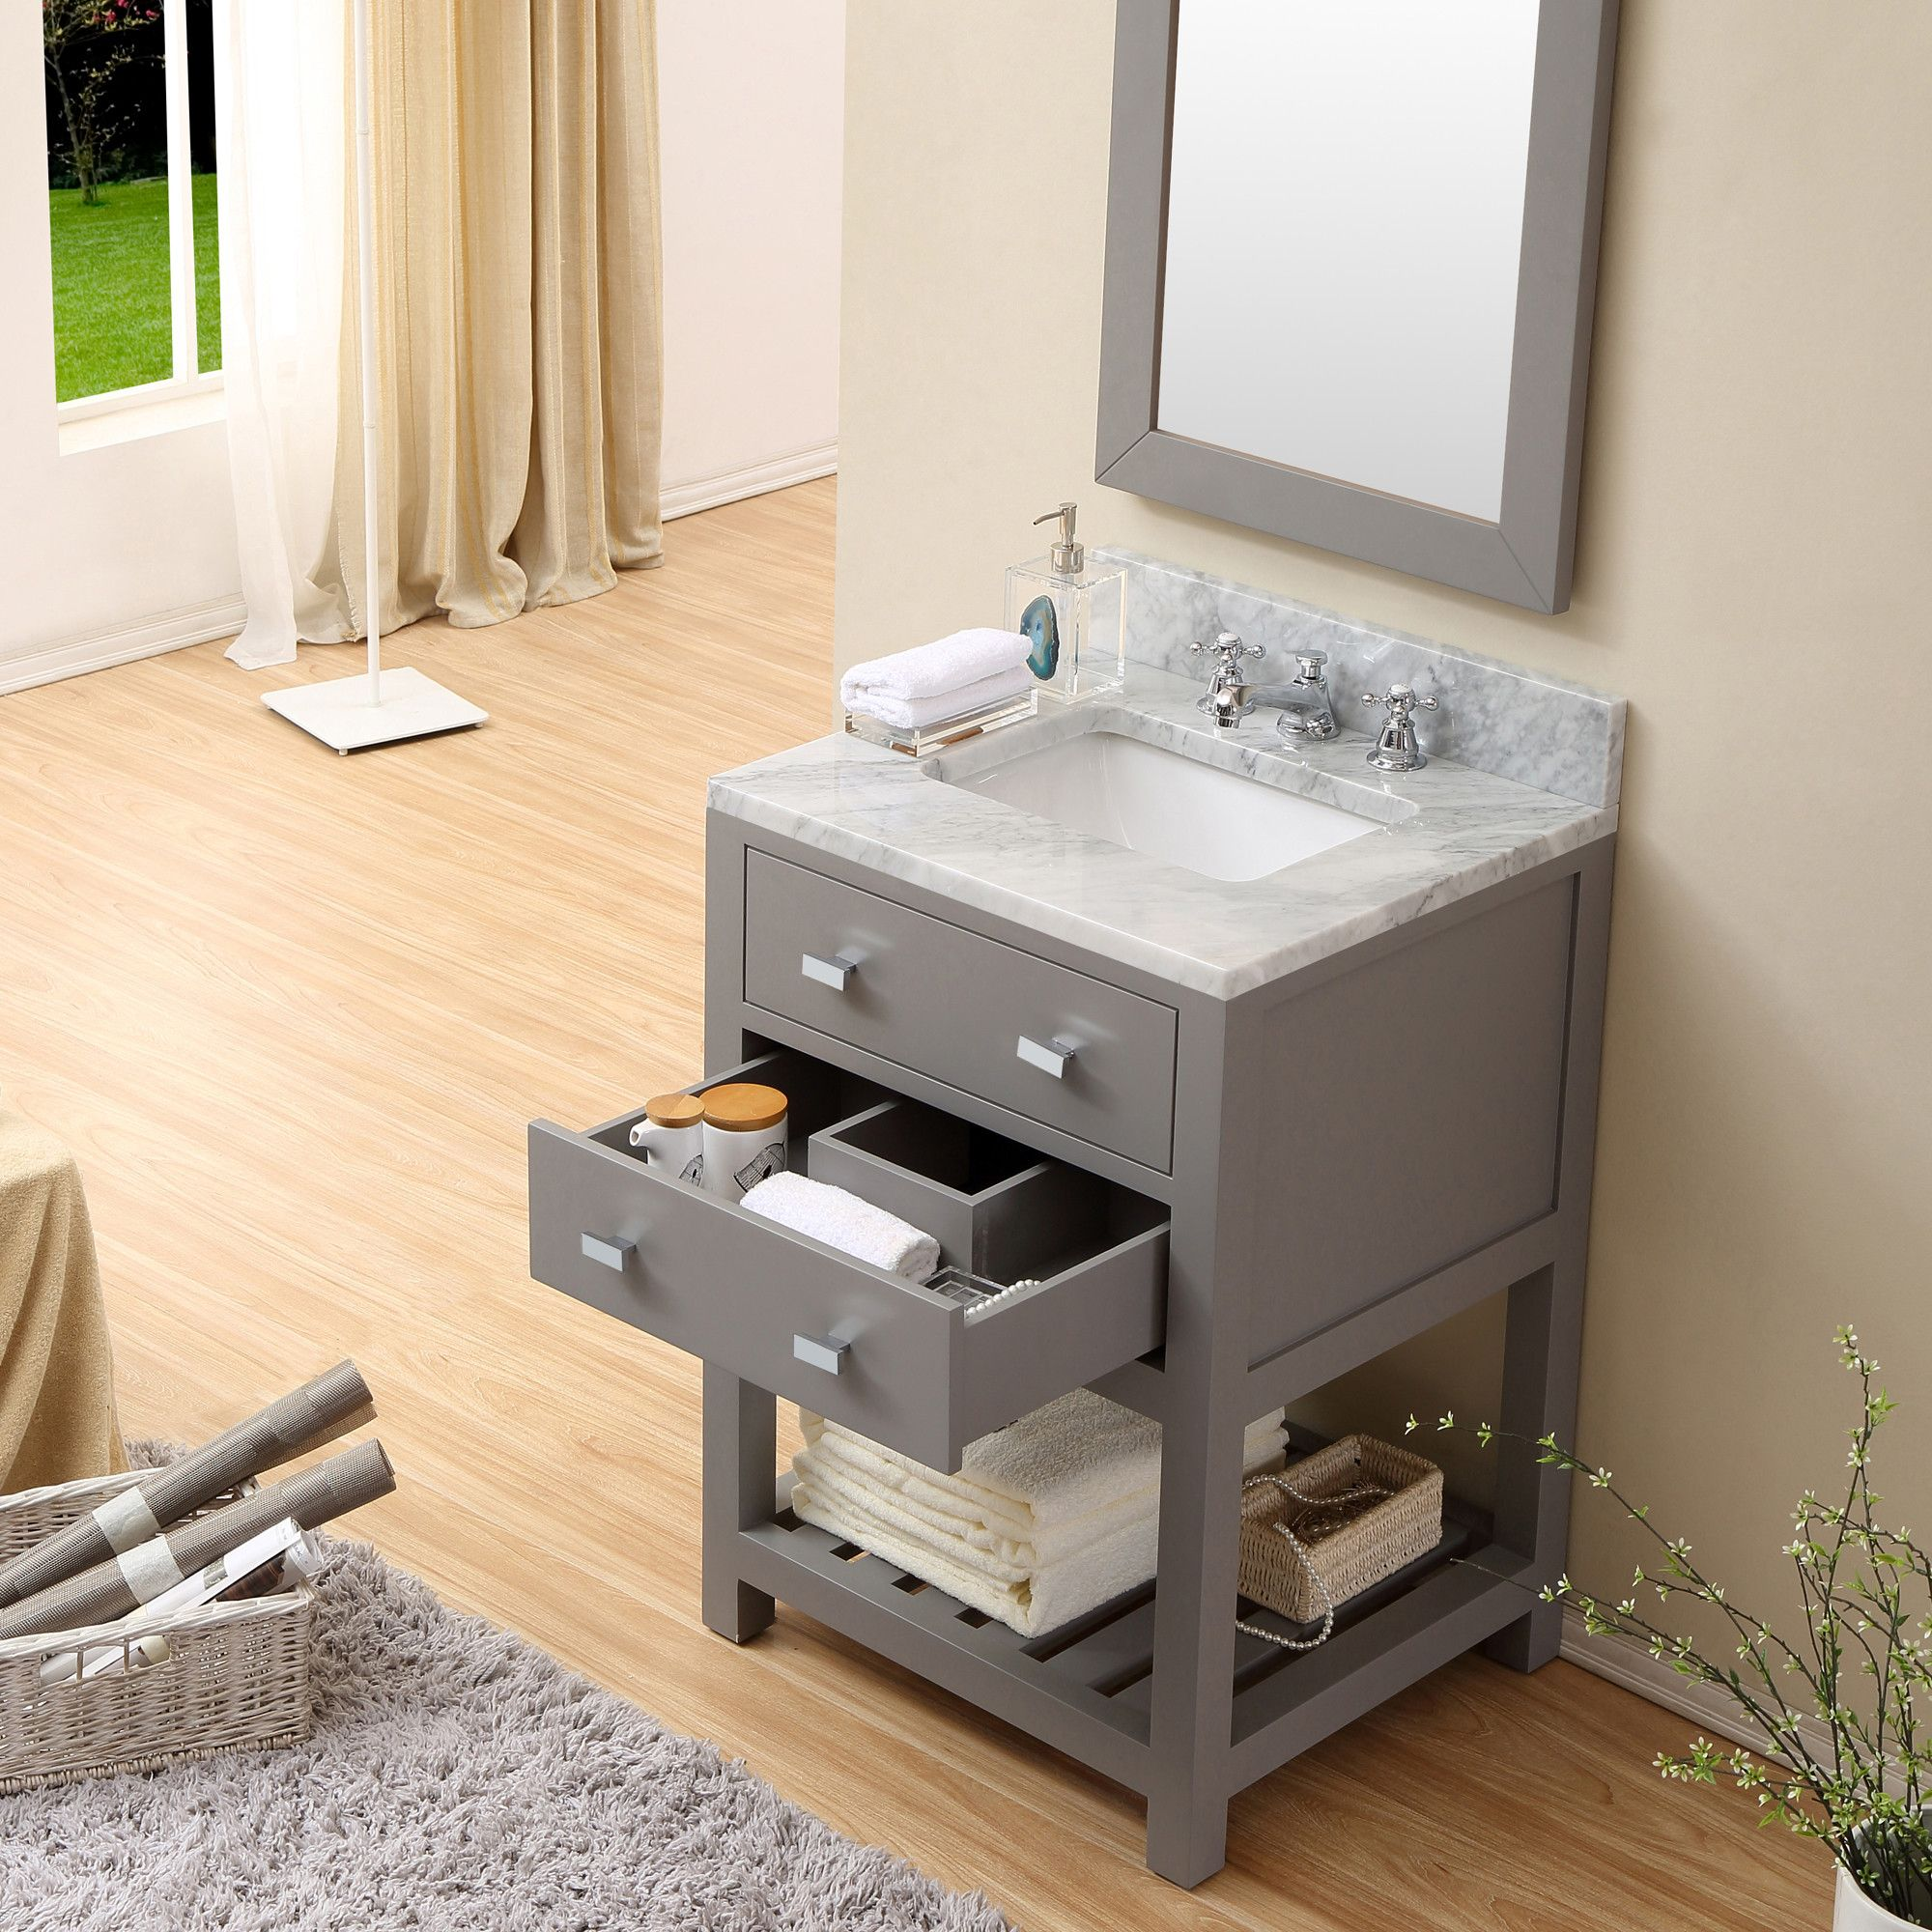 ideas of double vanities for sink bathroom home tags vanity country sinks tops bunch and bathrooms depot